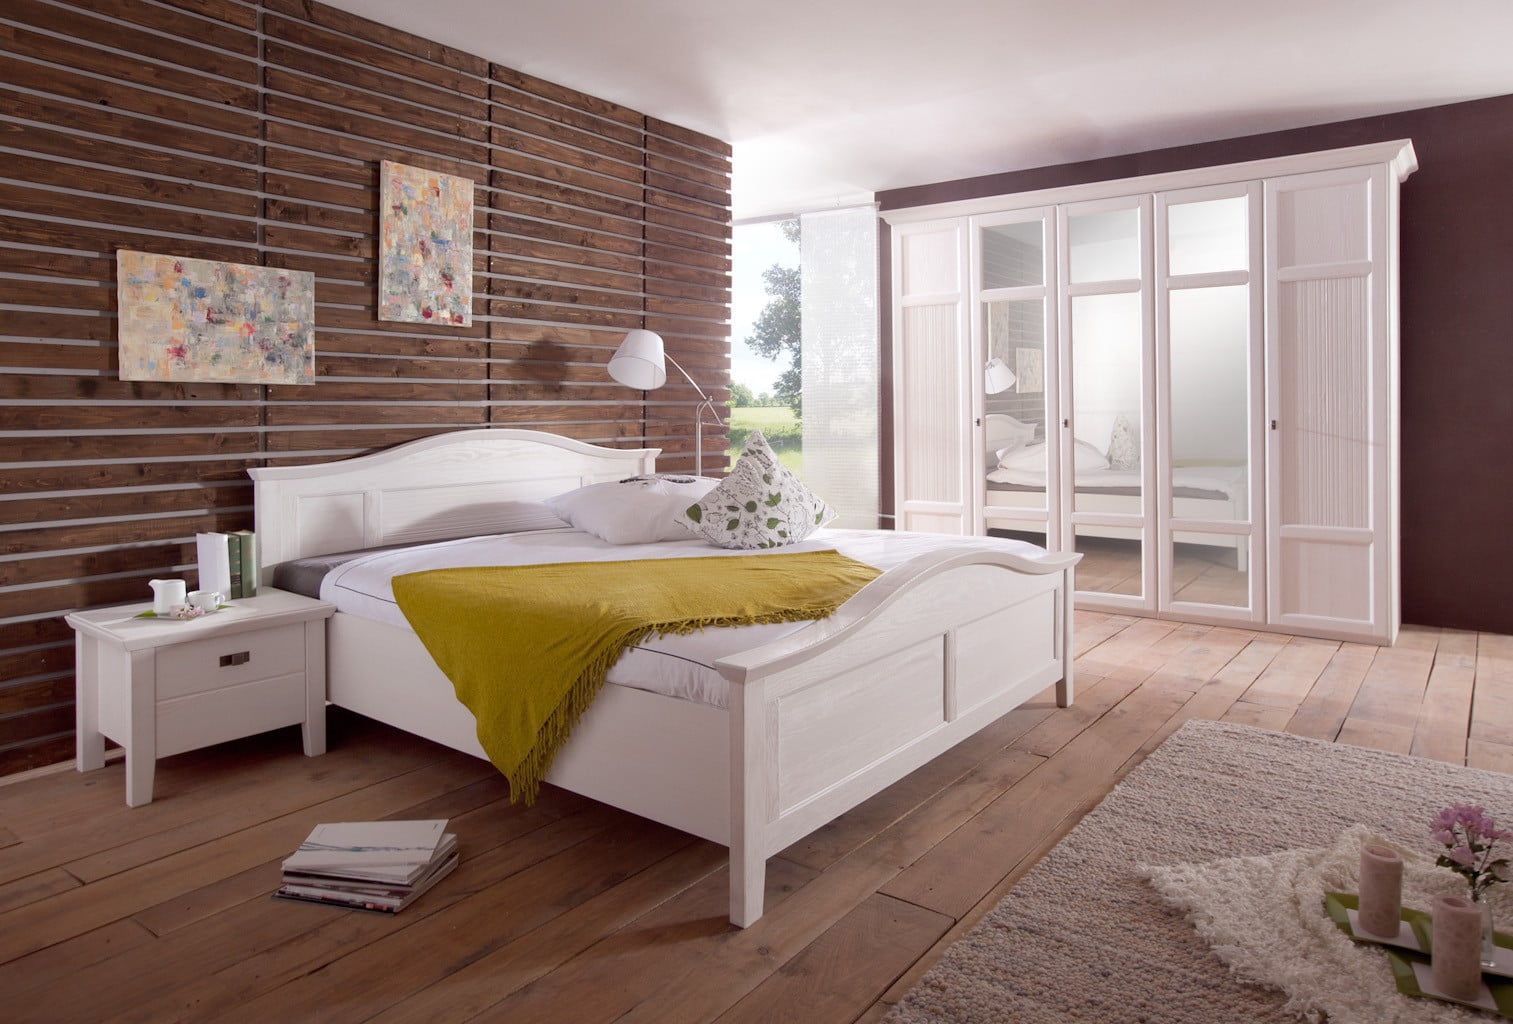 doppelbett rome pinie weiss 200x200cm landhaus bett pickupm. Black Bedroom Furniture Sets. Home Design Ideas